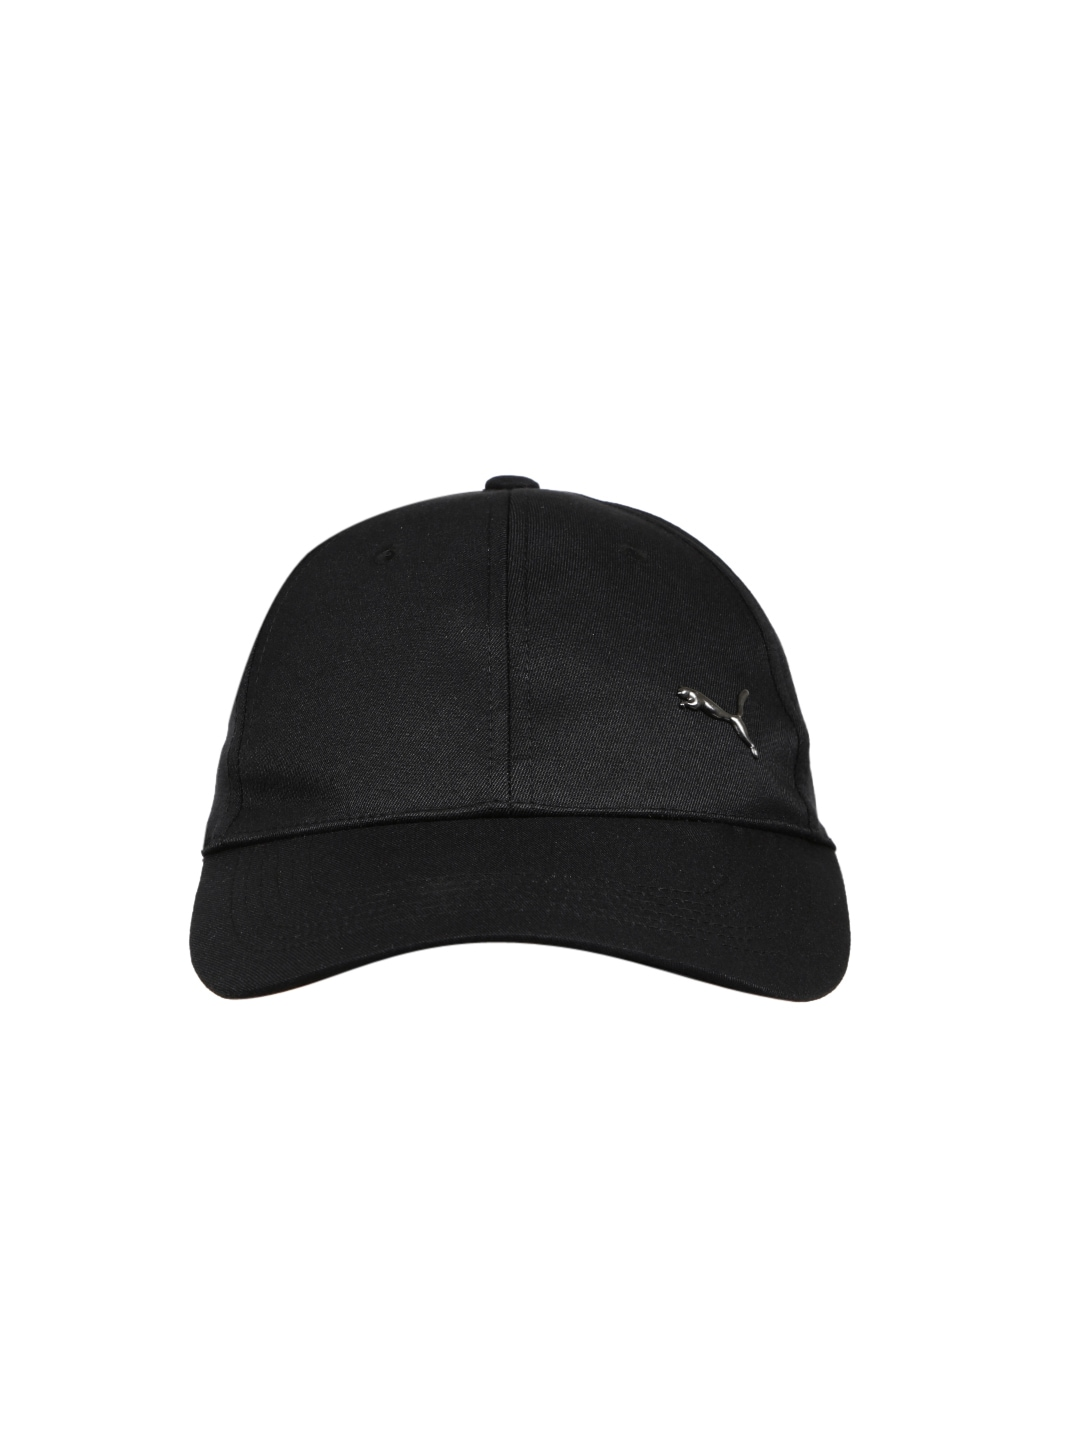 8ee5c3af0e1 Puma Original Caps - Buy Puma Original Caps online in India